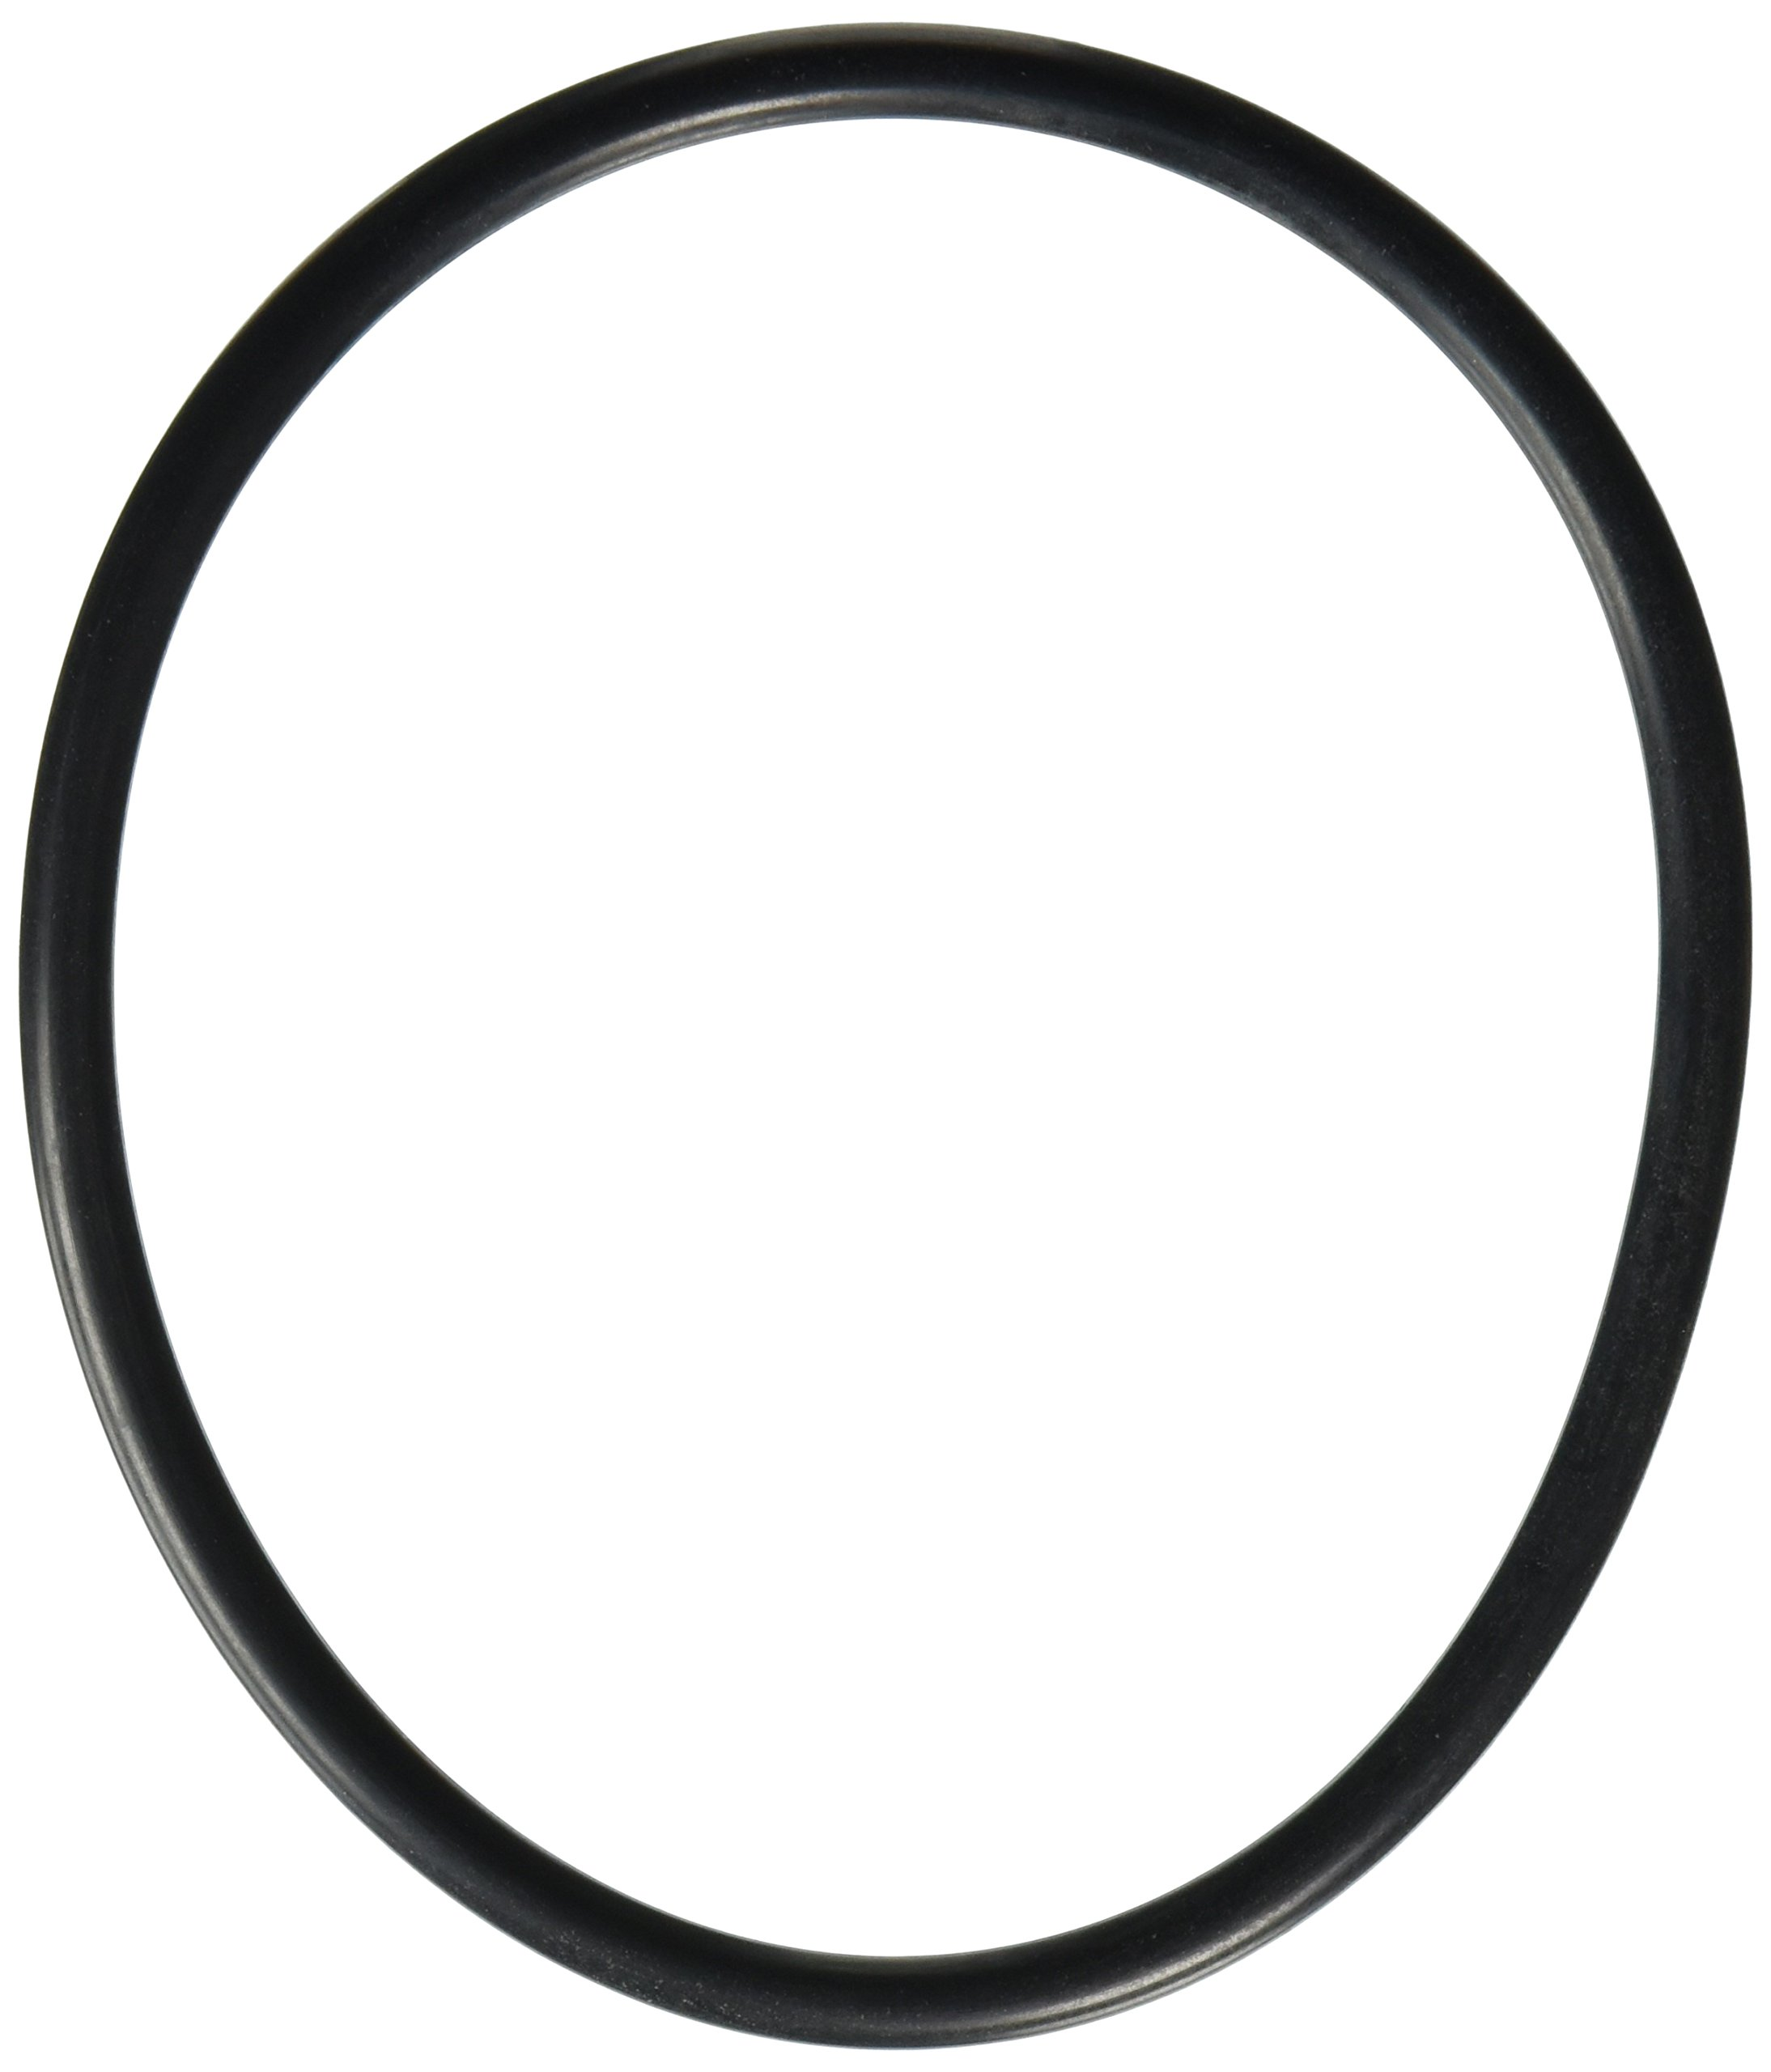 Pentair U9-161 Cord Ring Replacement CFA-Series Commercial Pool and Spa Pump